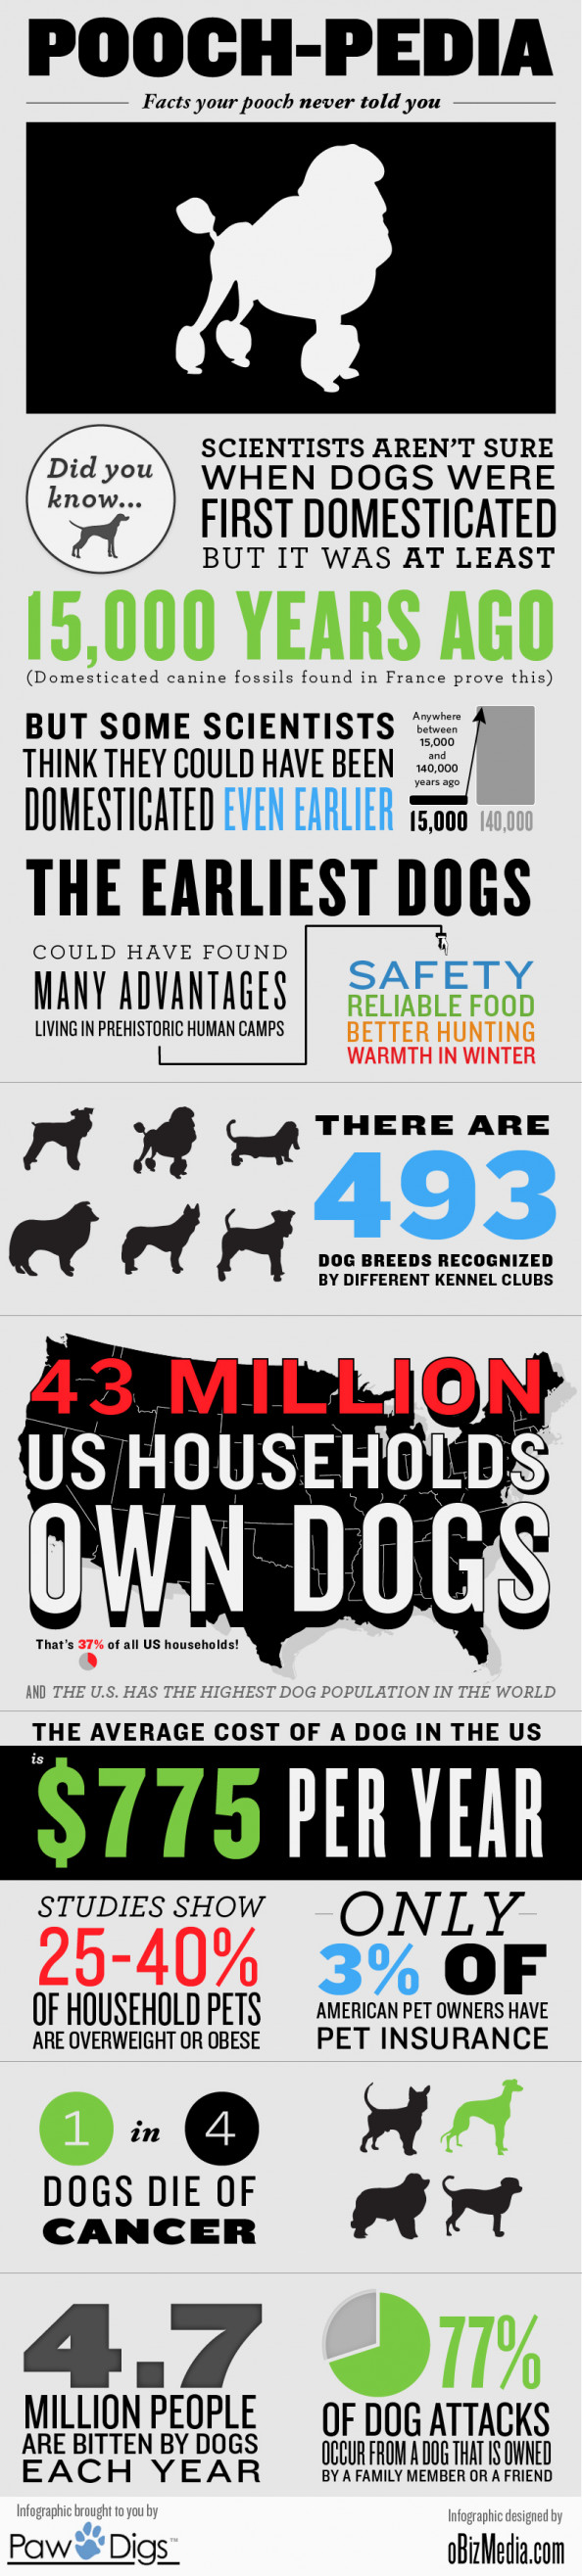 Poochpedia Infographic